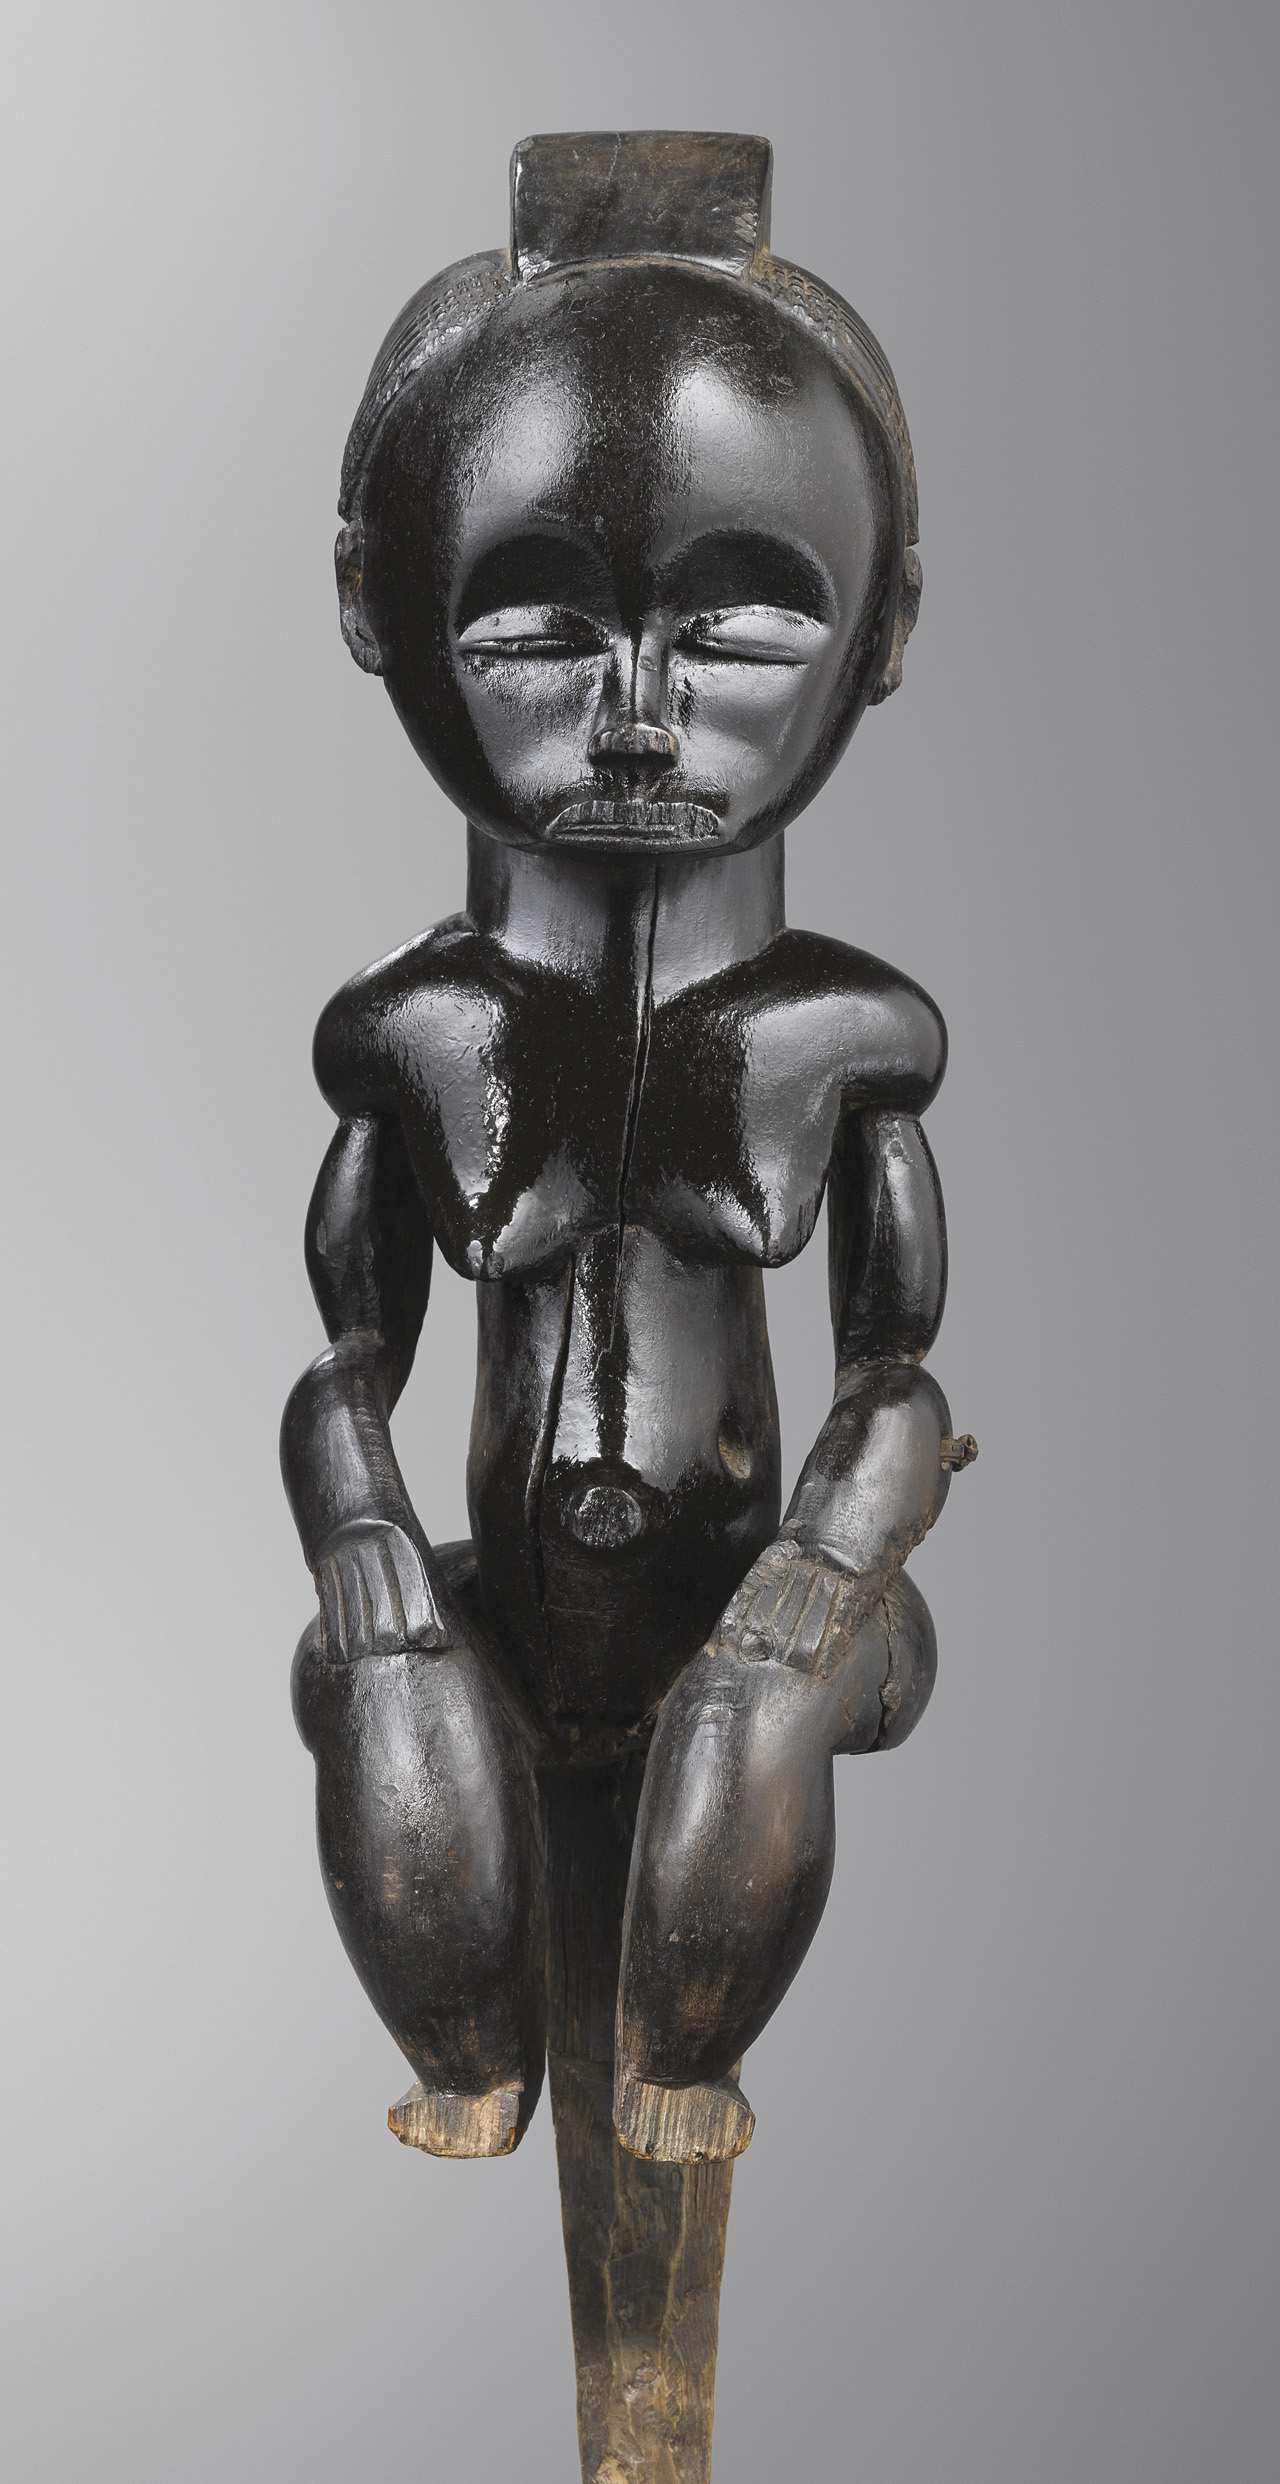 """Fang peoples, Betsi group (Gabon or Equatorial Guinea), """"The Black Venus"""" (aka """"eyema byeri"""" and """"Pahouin Venus,"""" 19th century) (© and rights reserved Musée Dapper, Paris)"""